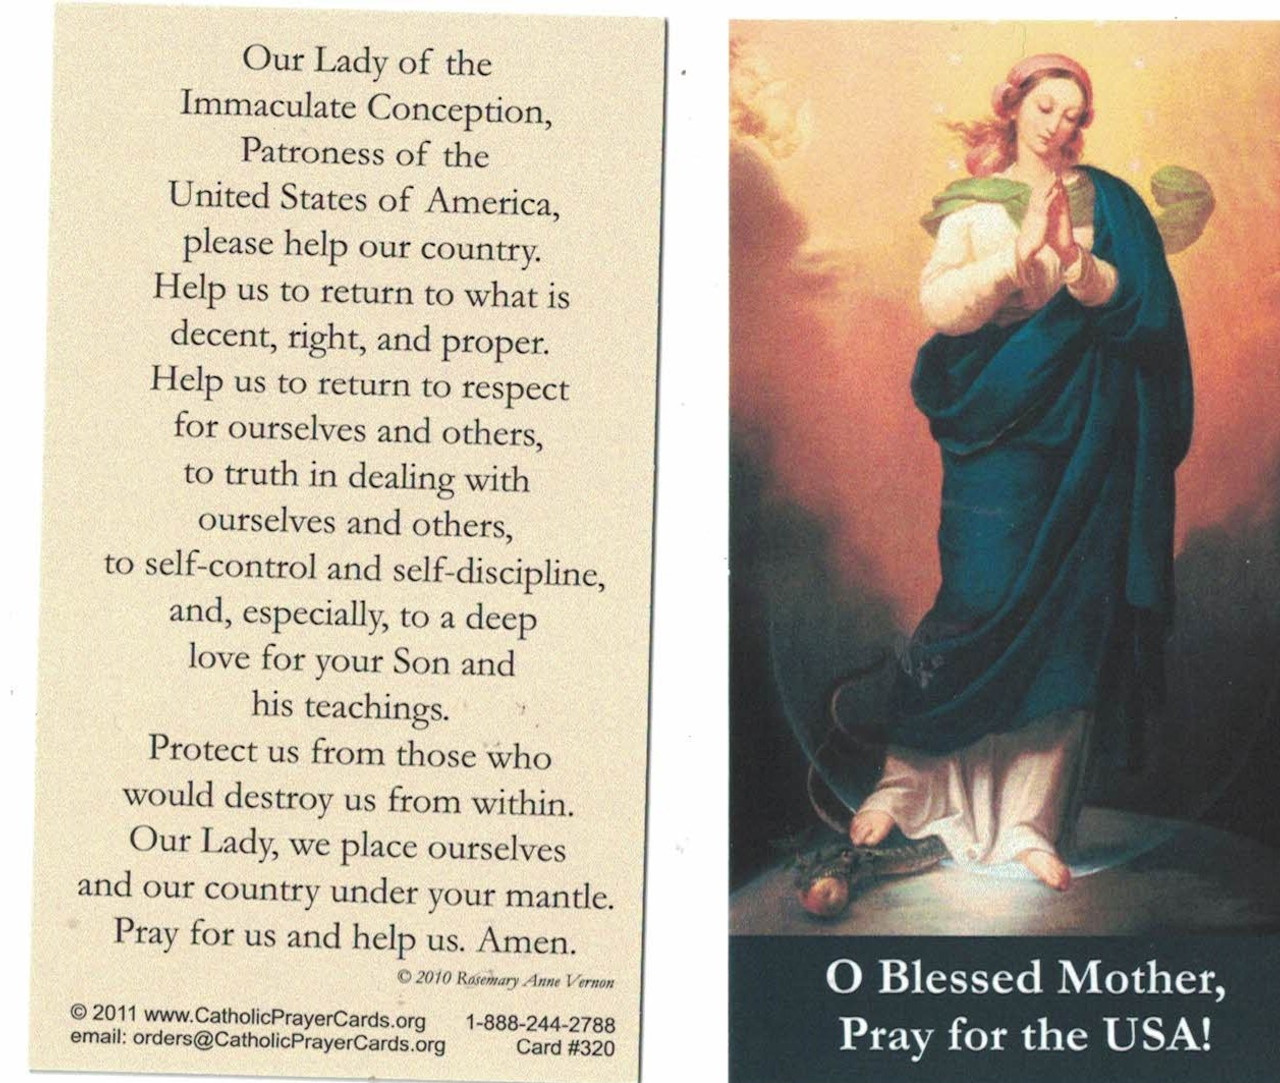 Prayer to Our Lady of the Immaculate Conception for the United States of America Prayer Card